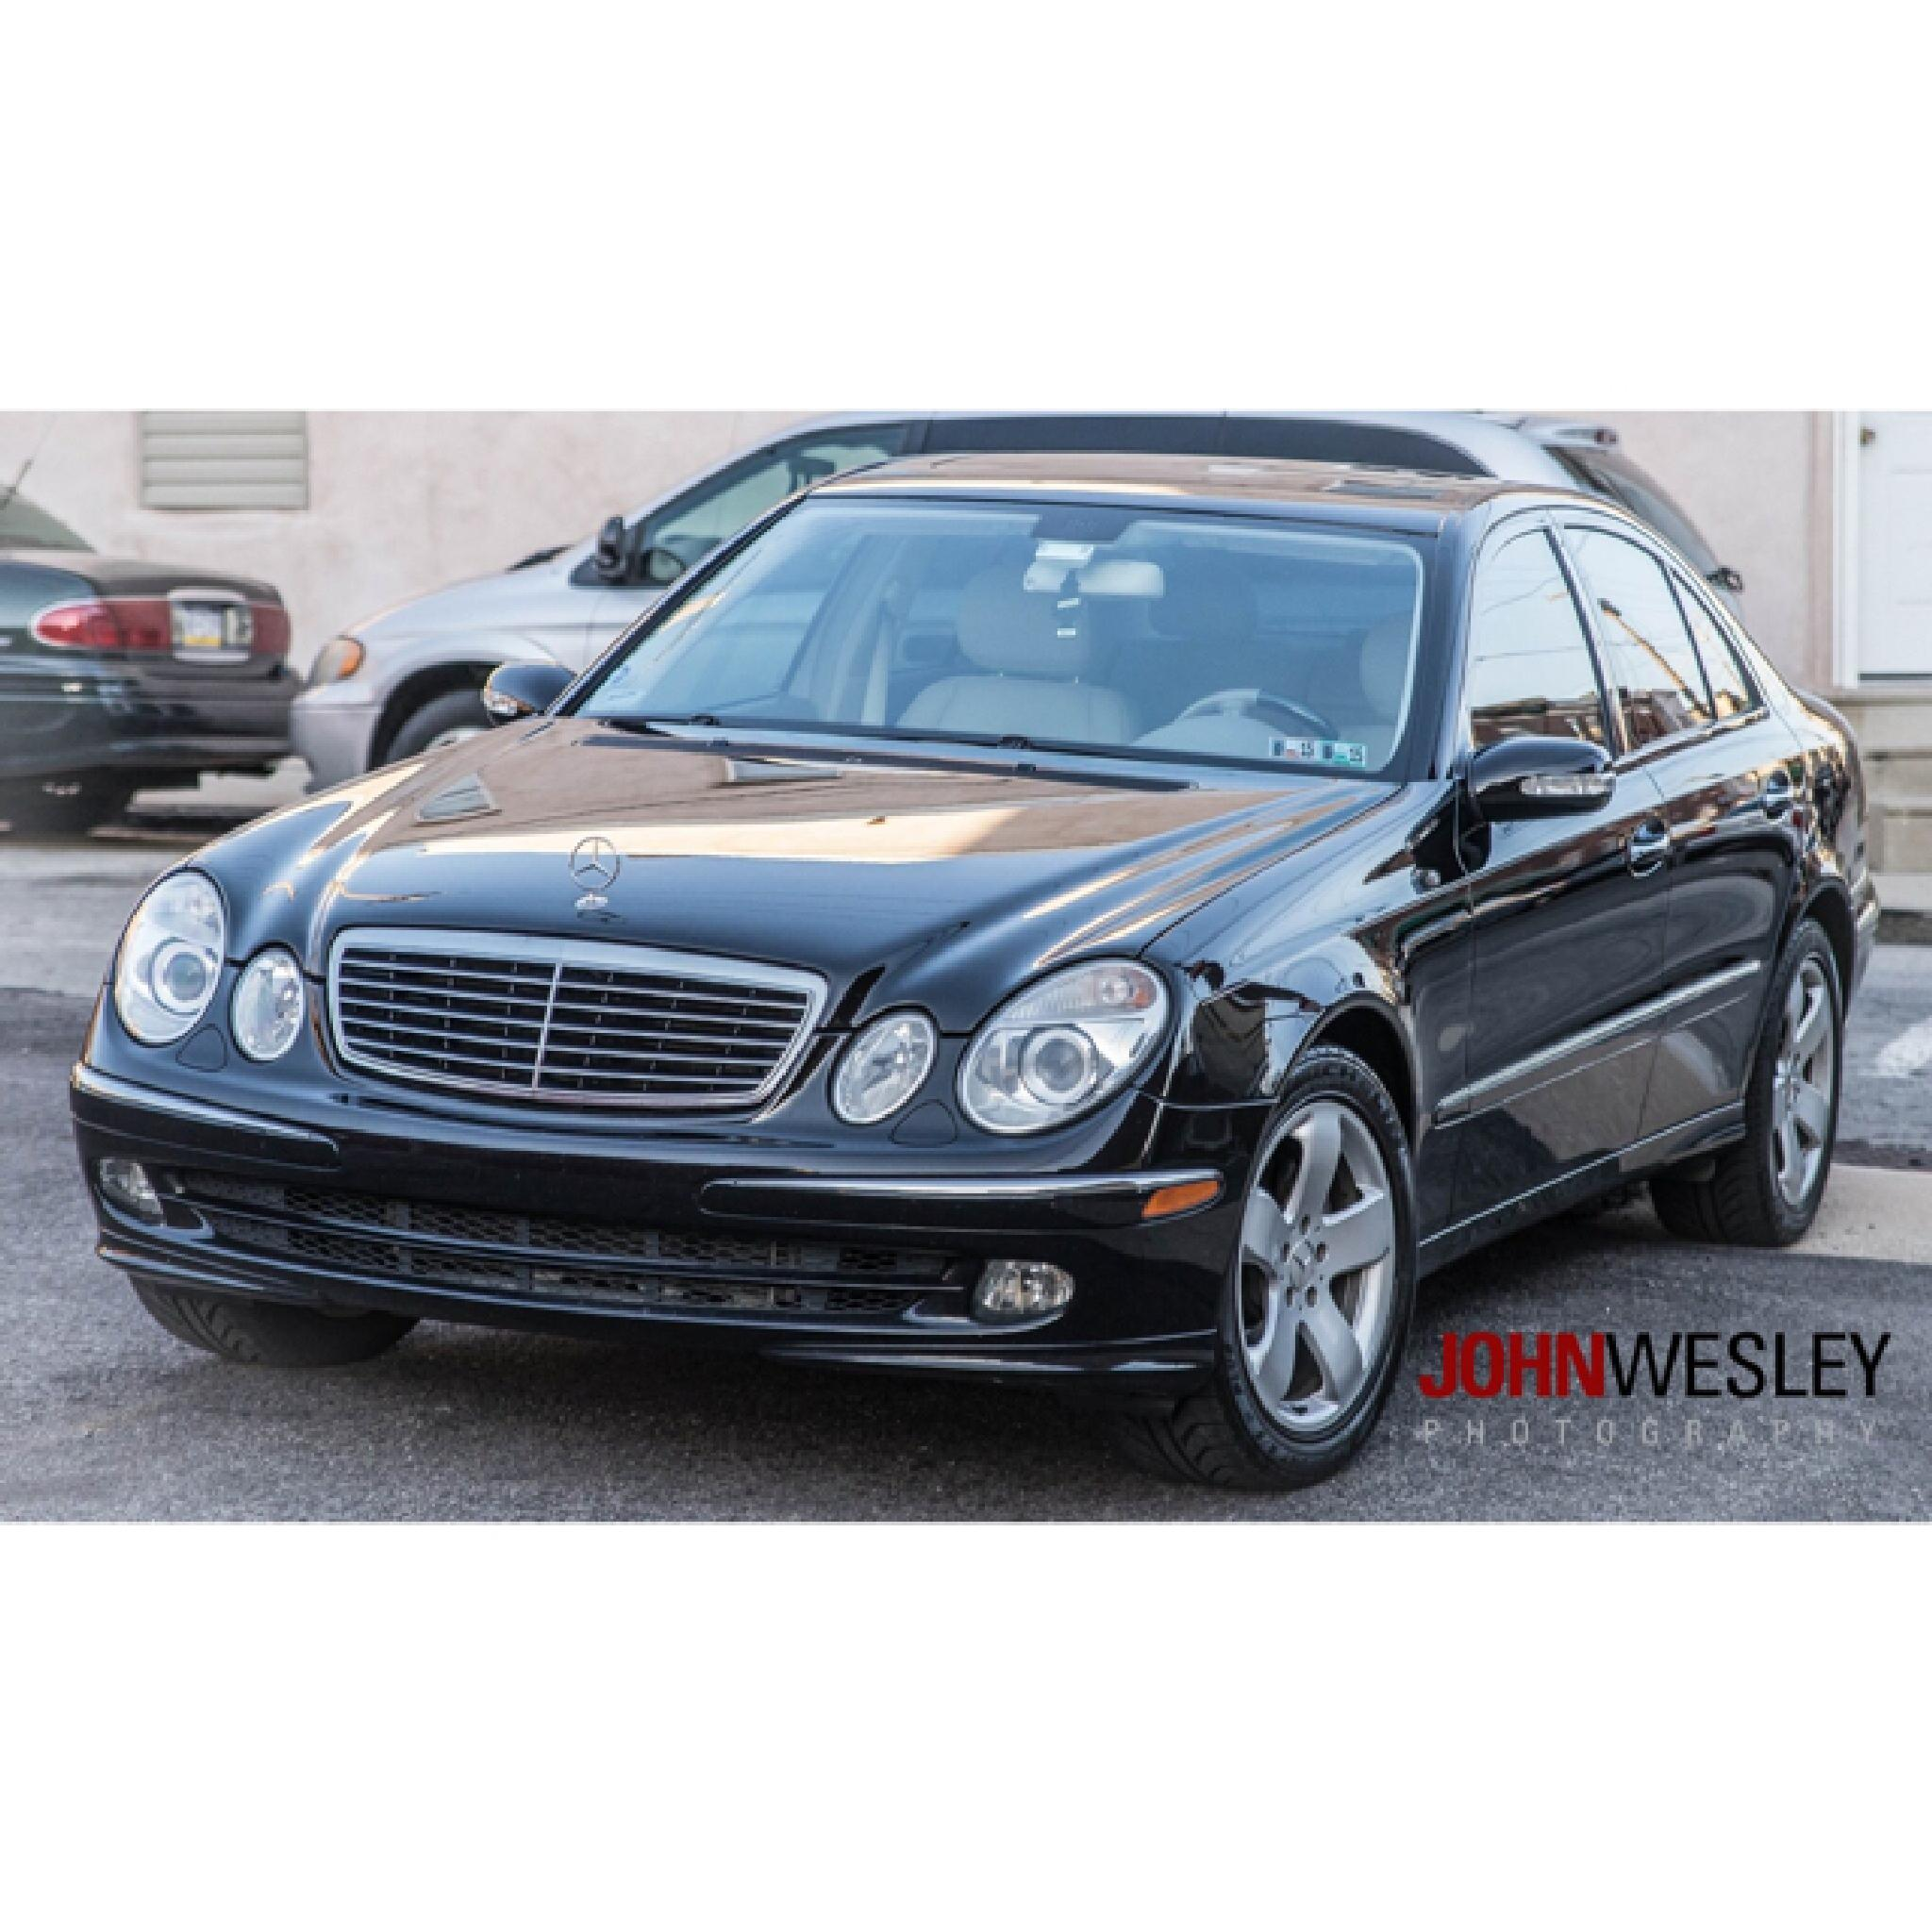 Mercedes Benz E350 by John Wesley Photography